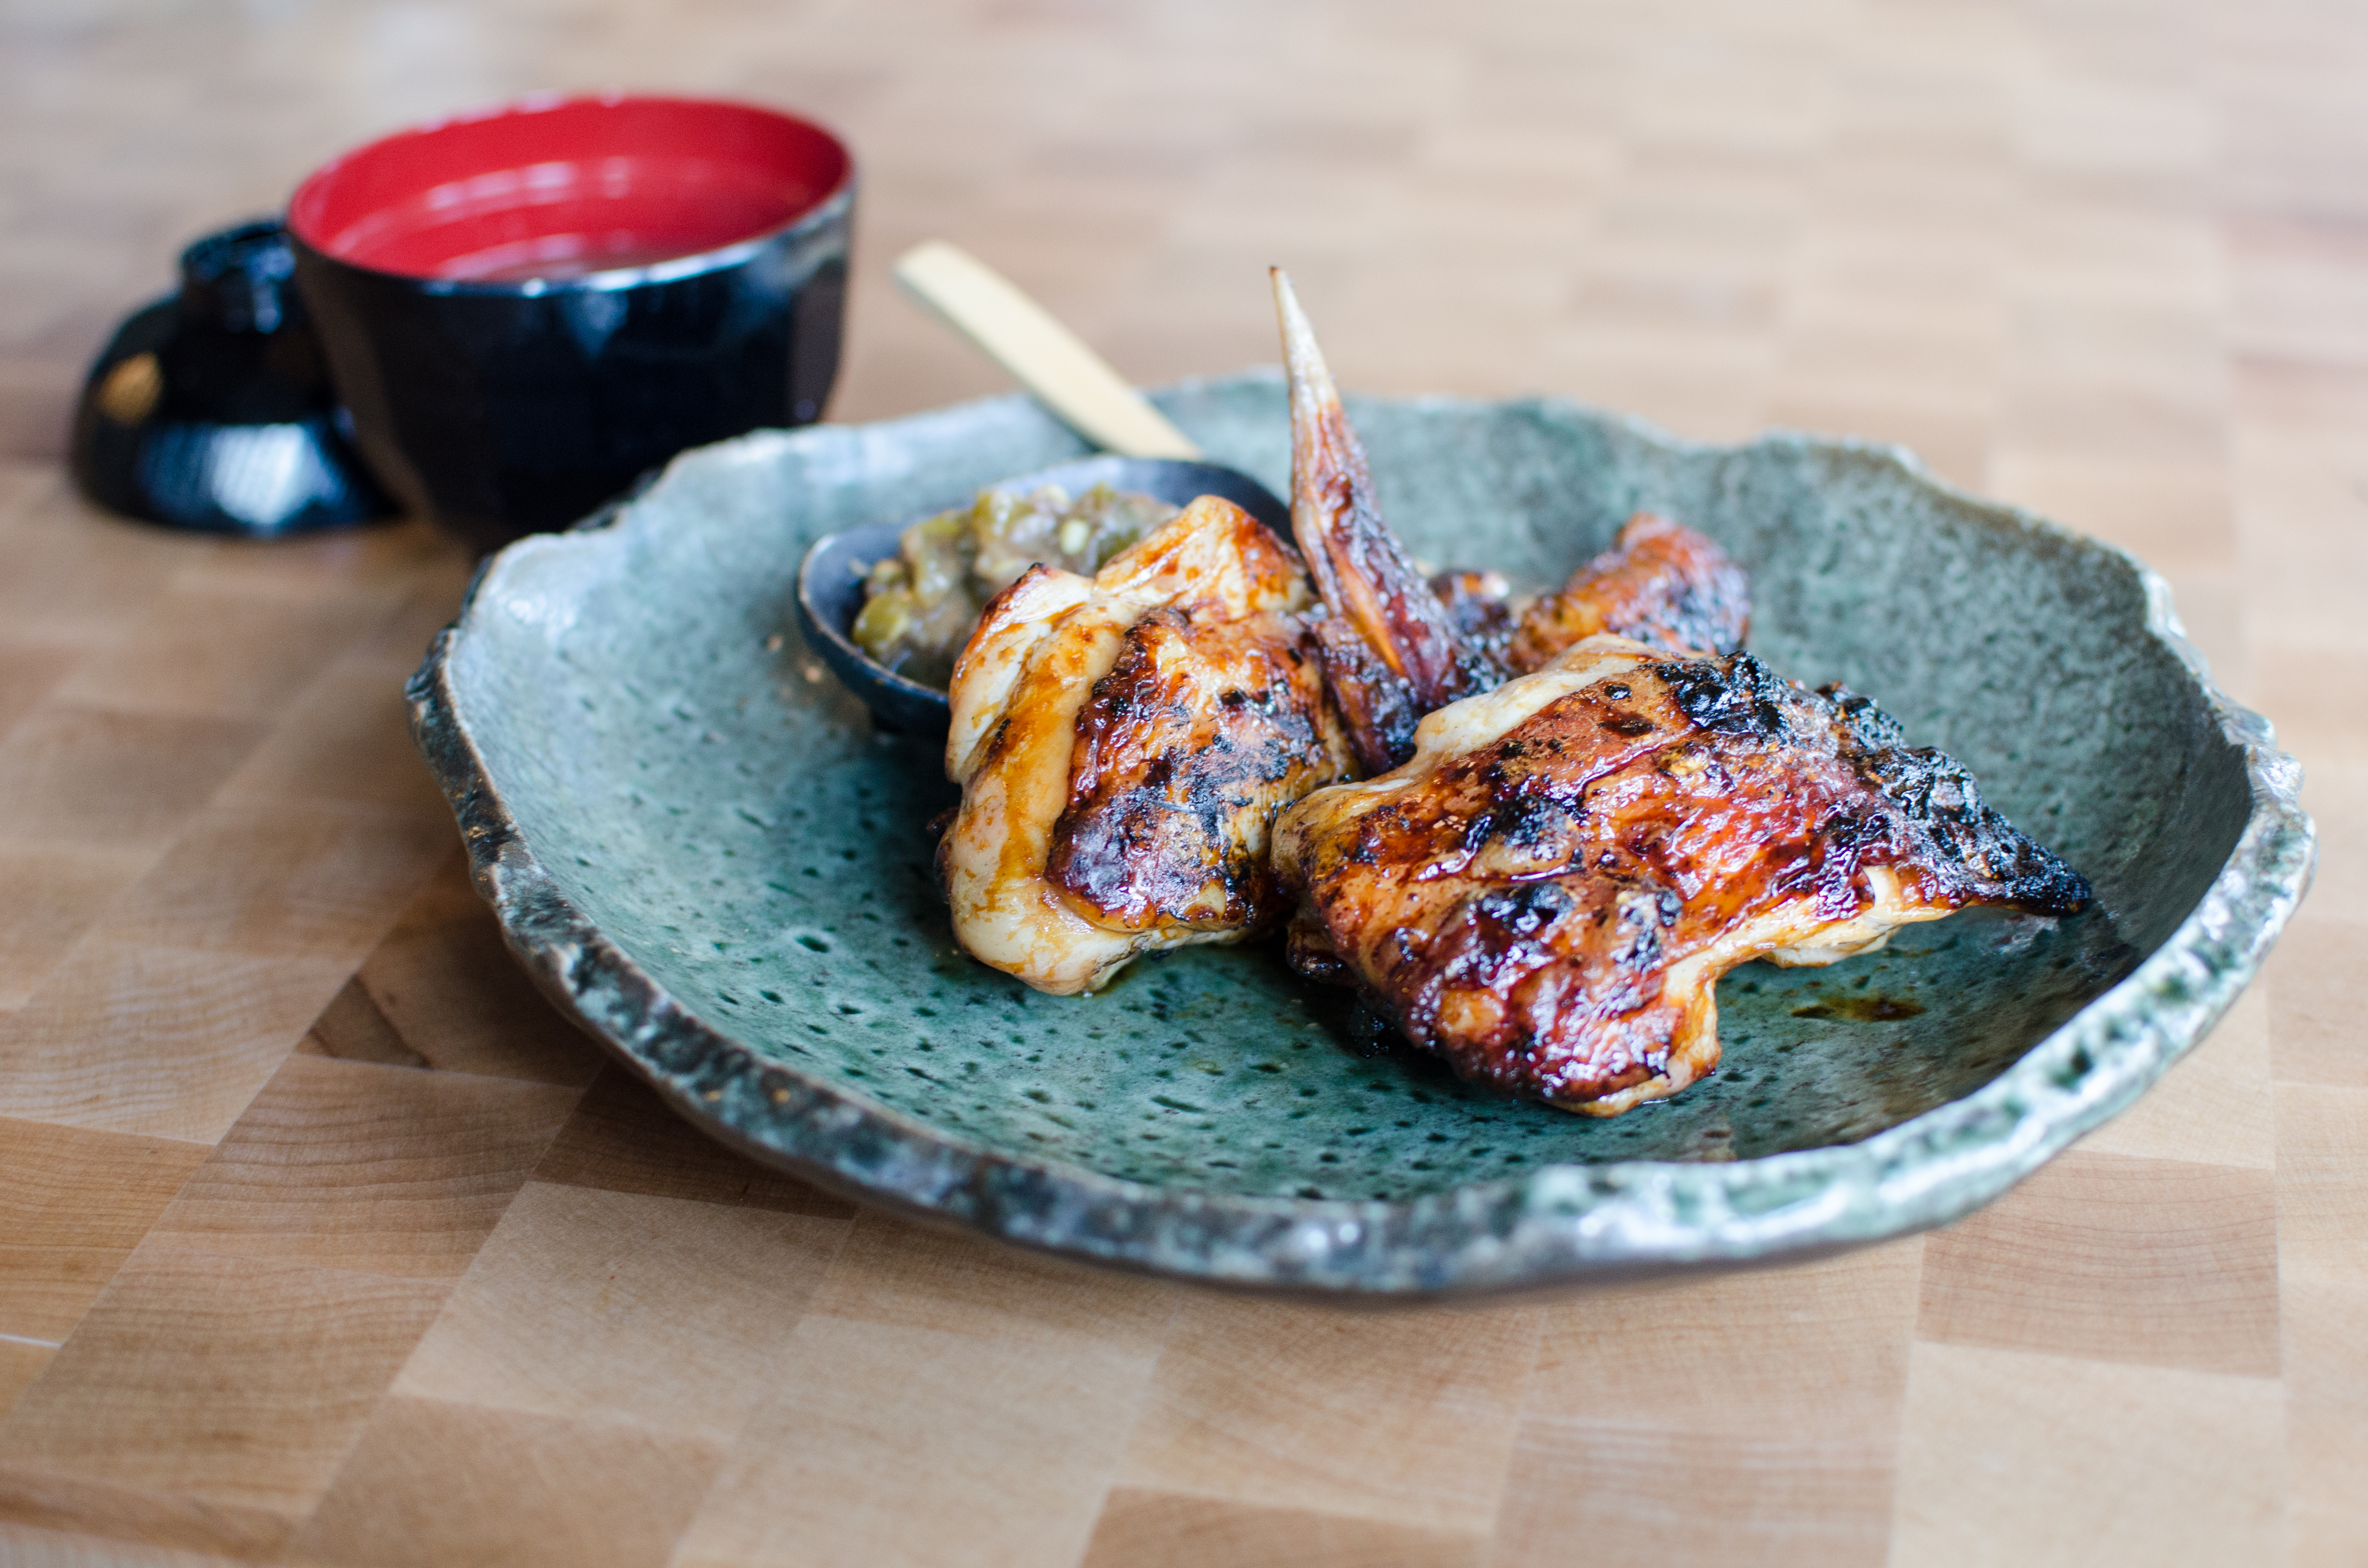 Grilled chicken sits on a light blue plate with rough edges, alongside a small black and red bowl full of broth